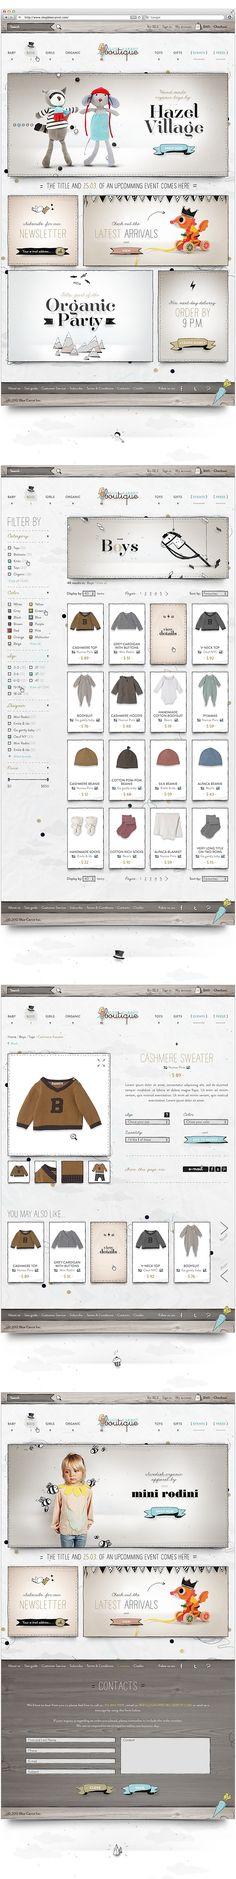 Blue Carrot Boutique by Stella Petkova #e-shop #ecommerce #webdesign| #webdesign #it #web #design #layout #userinterface #website #webdesign <<< repinned by an #advertising #agency from #Hamburg / #Germany - www.BlickeDeeler.de